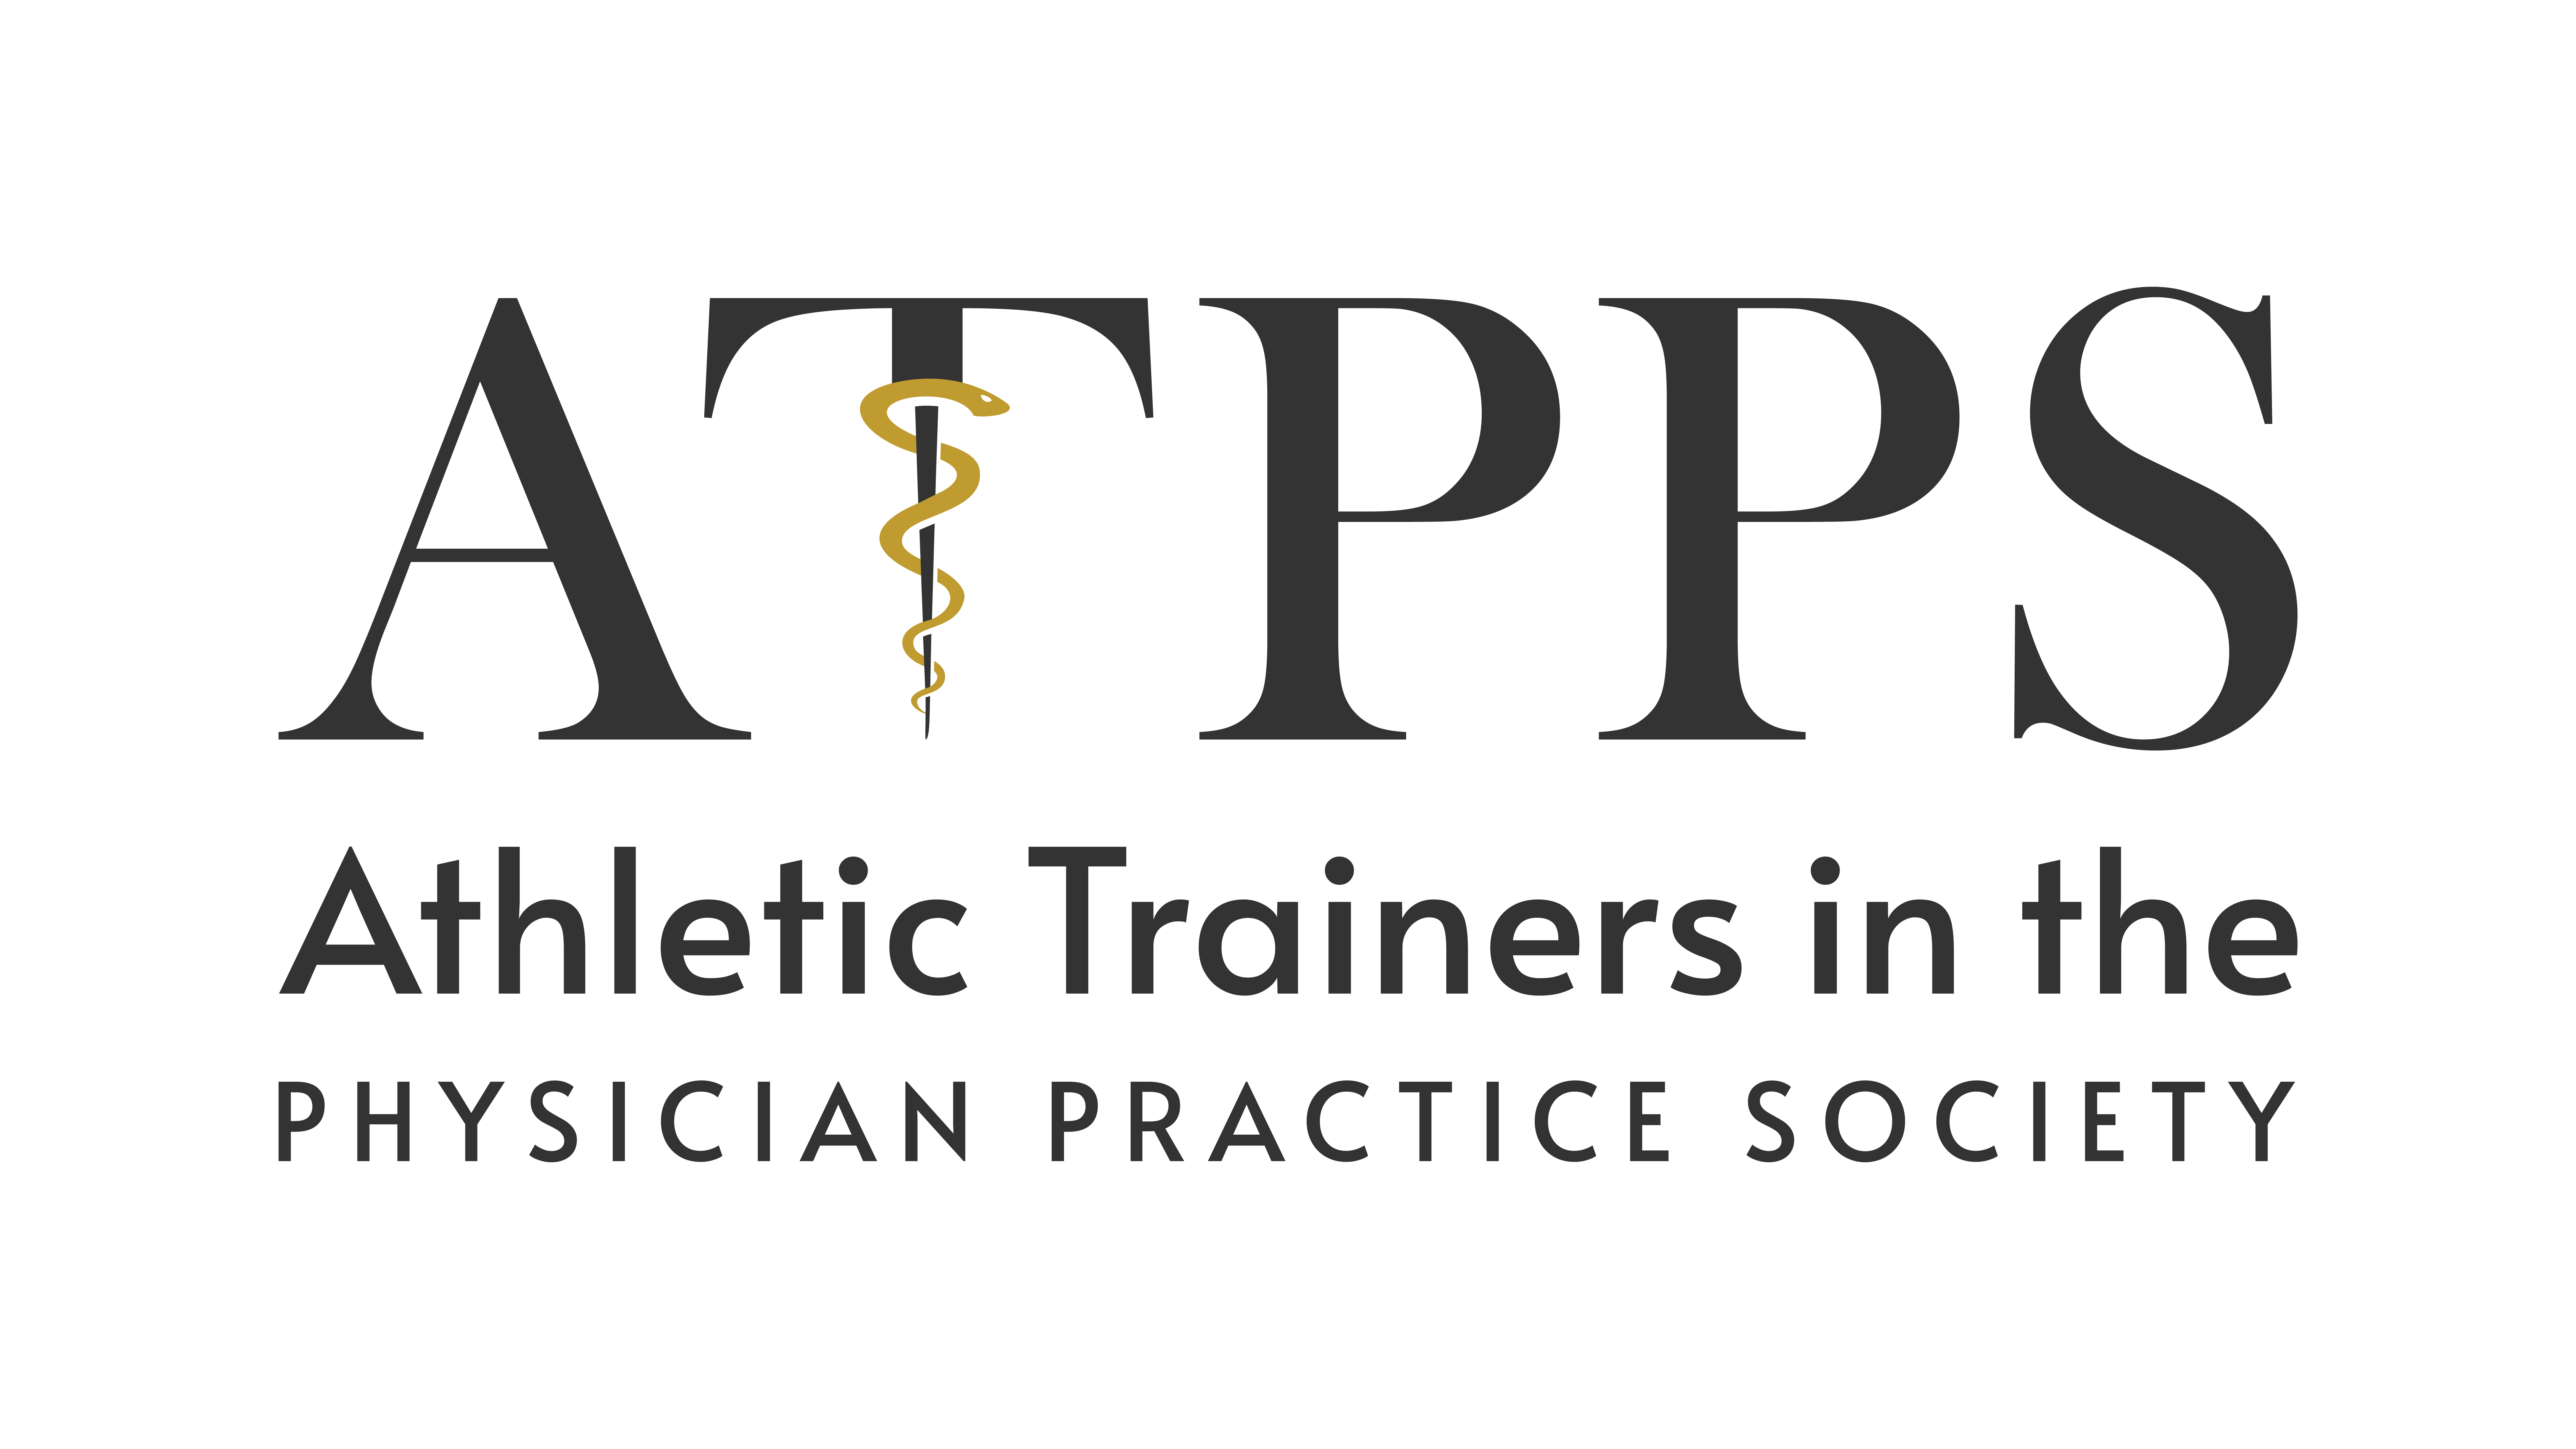 Athletic Trainers in the Physician Practice Society